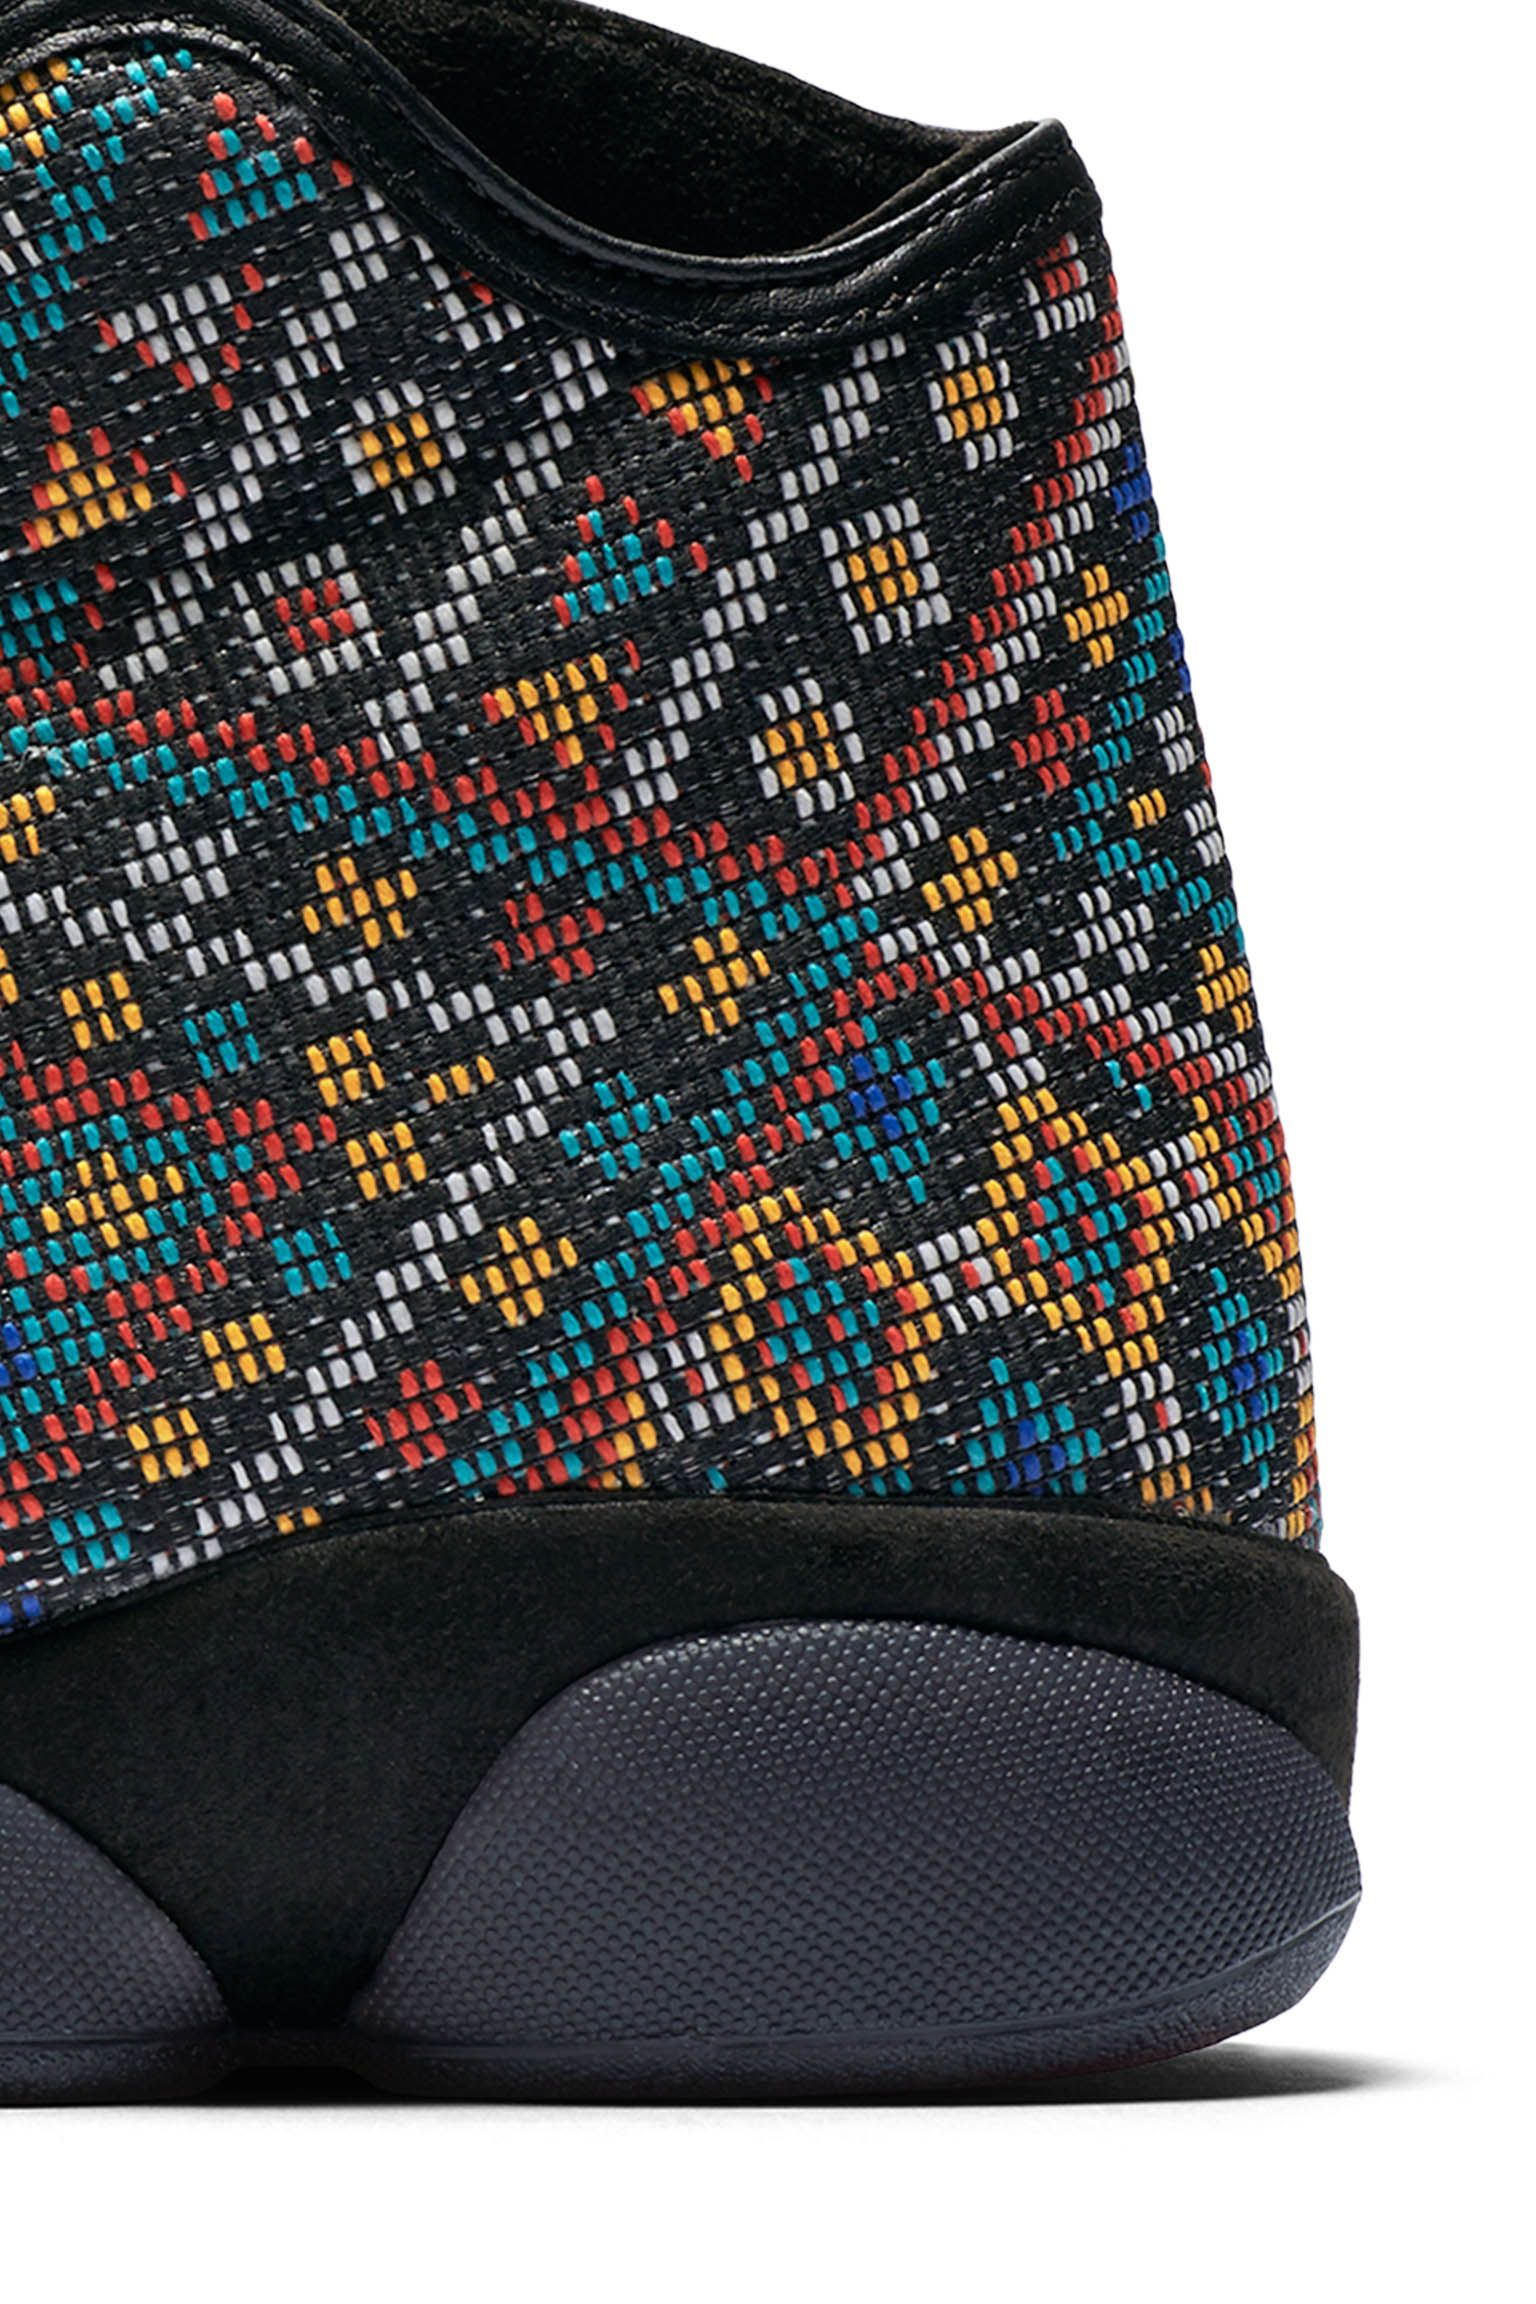 Jordan Horizon 'Black Multi-Color' Release Date